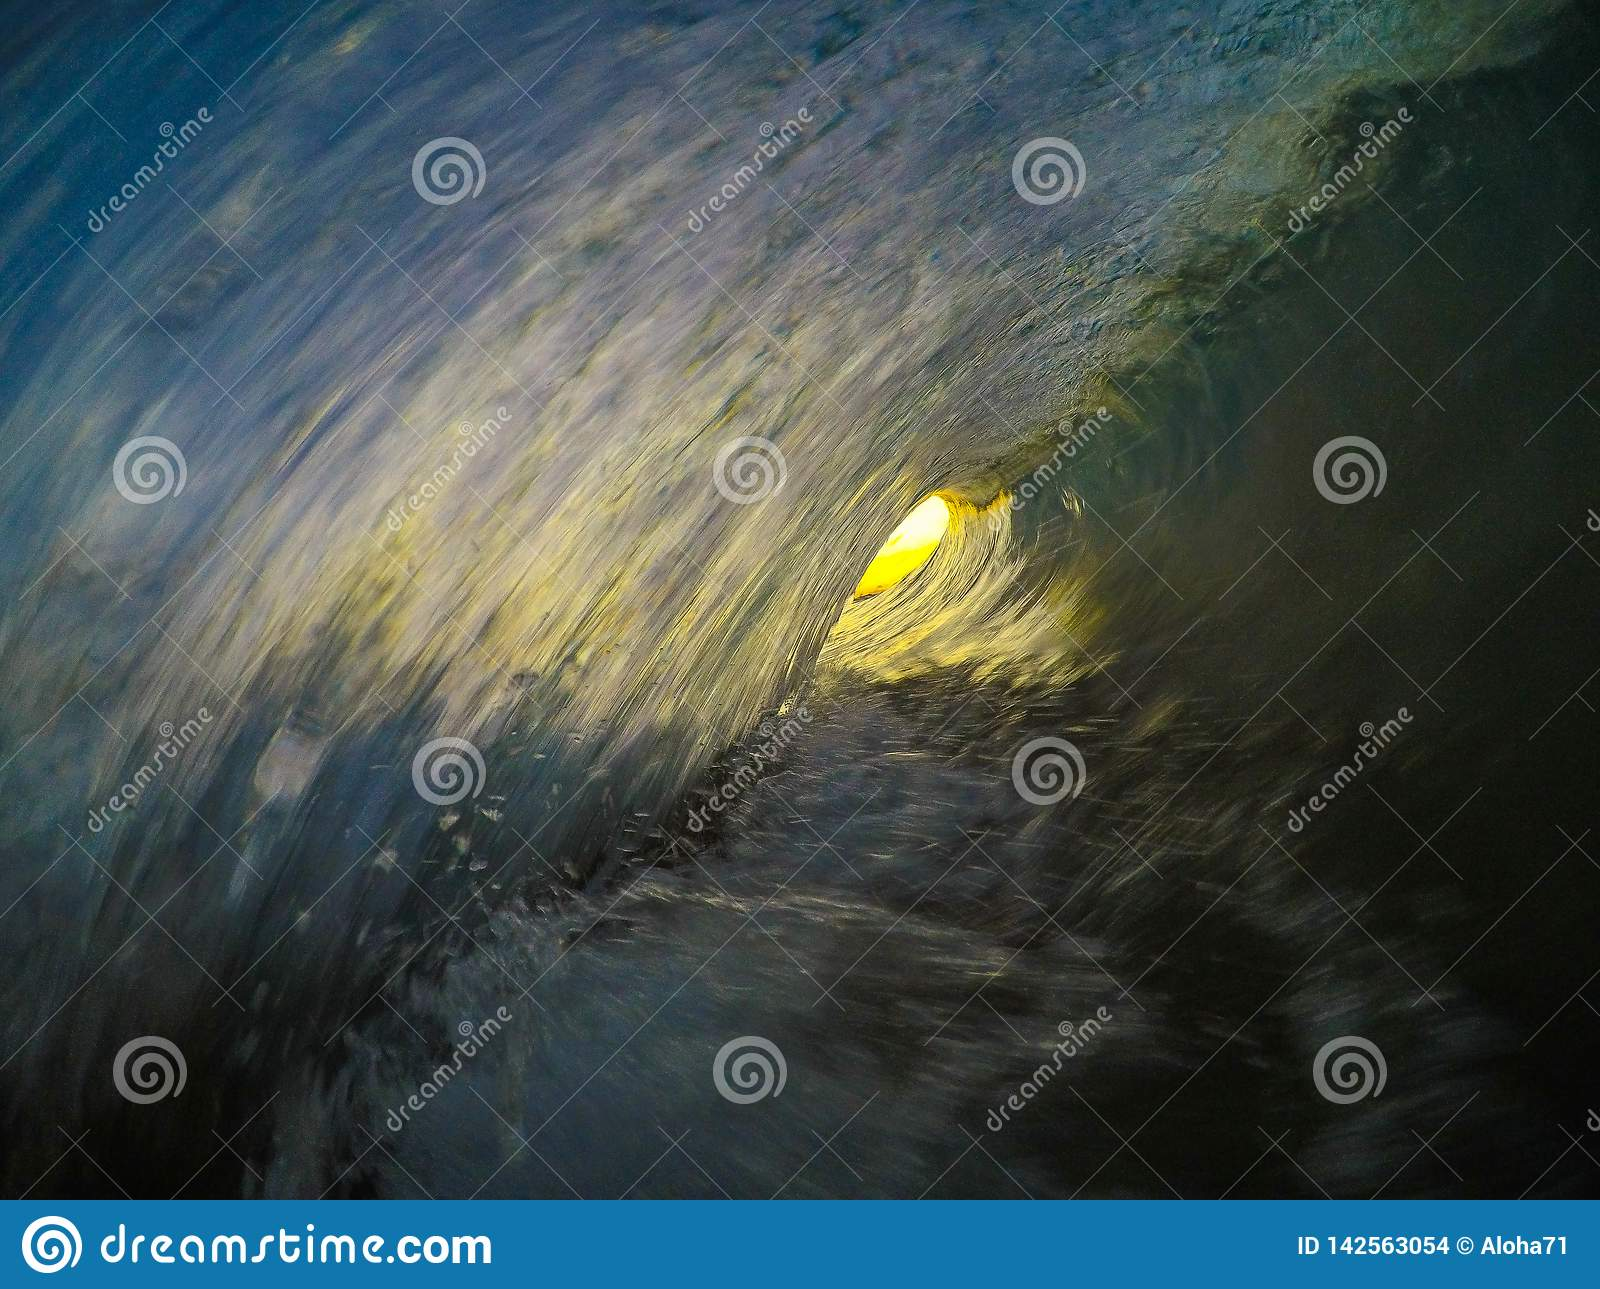 Inside the barrel of a wave